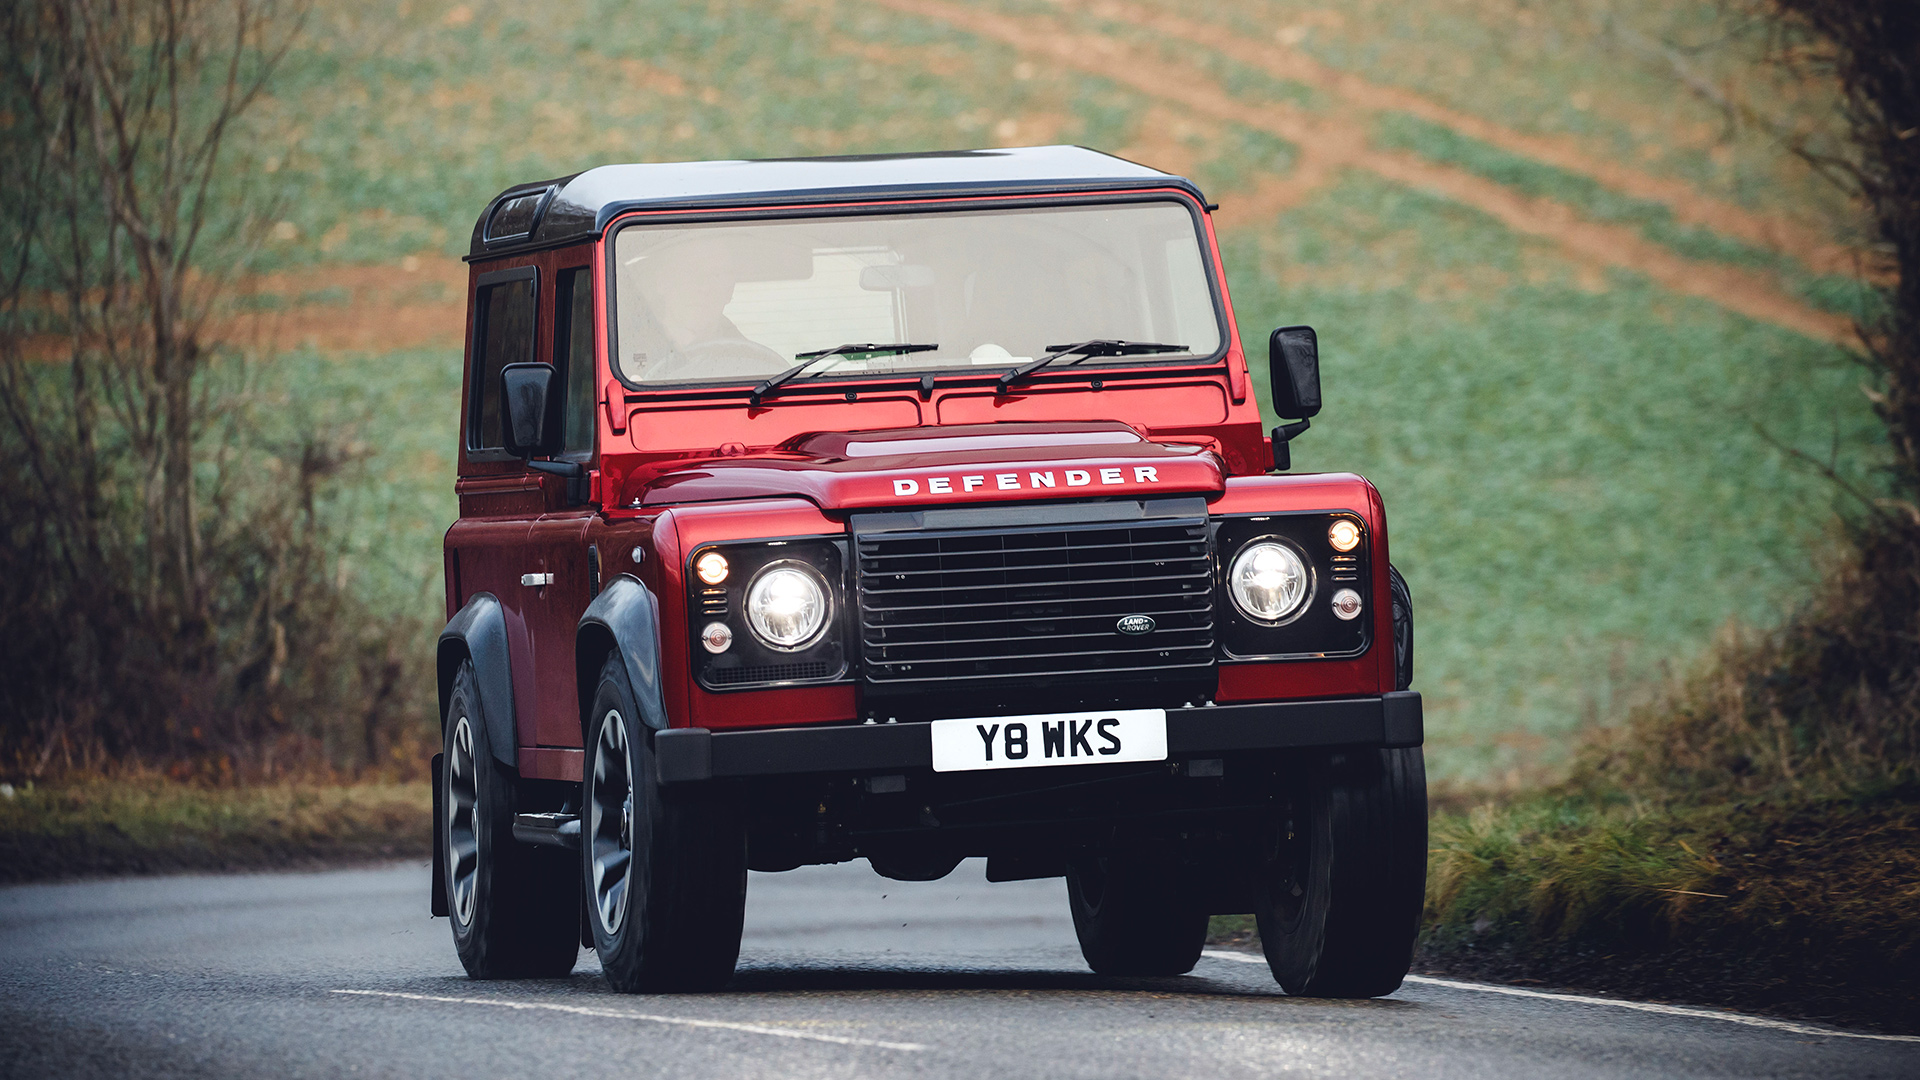 Land Rovers For Sale >> New Used Land Rover Defender 90 Cars For Sale Auto Trader